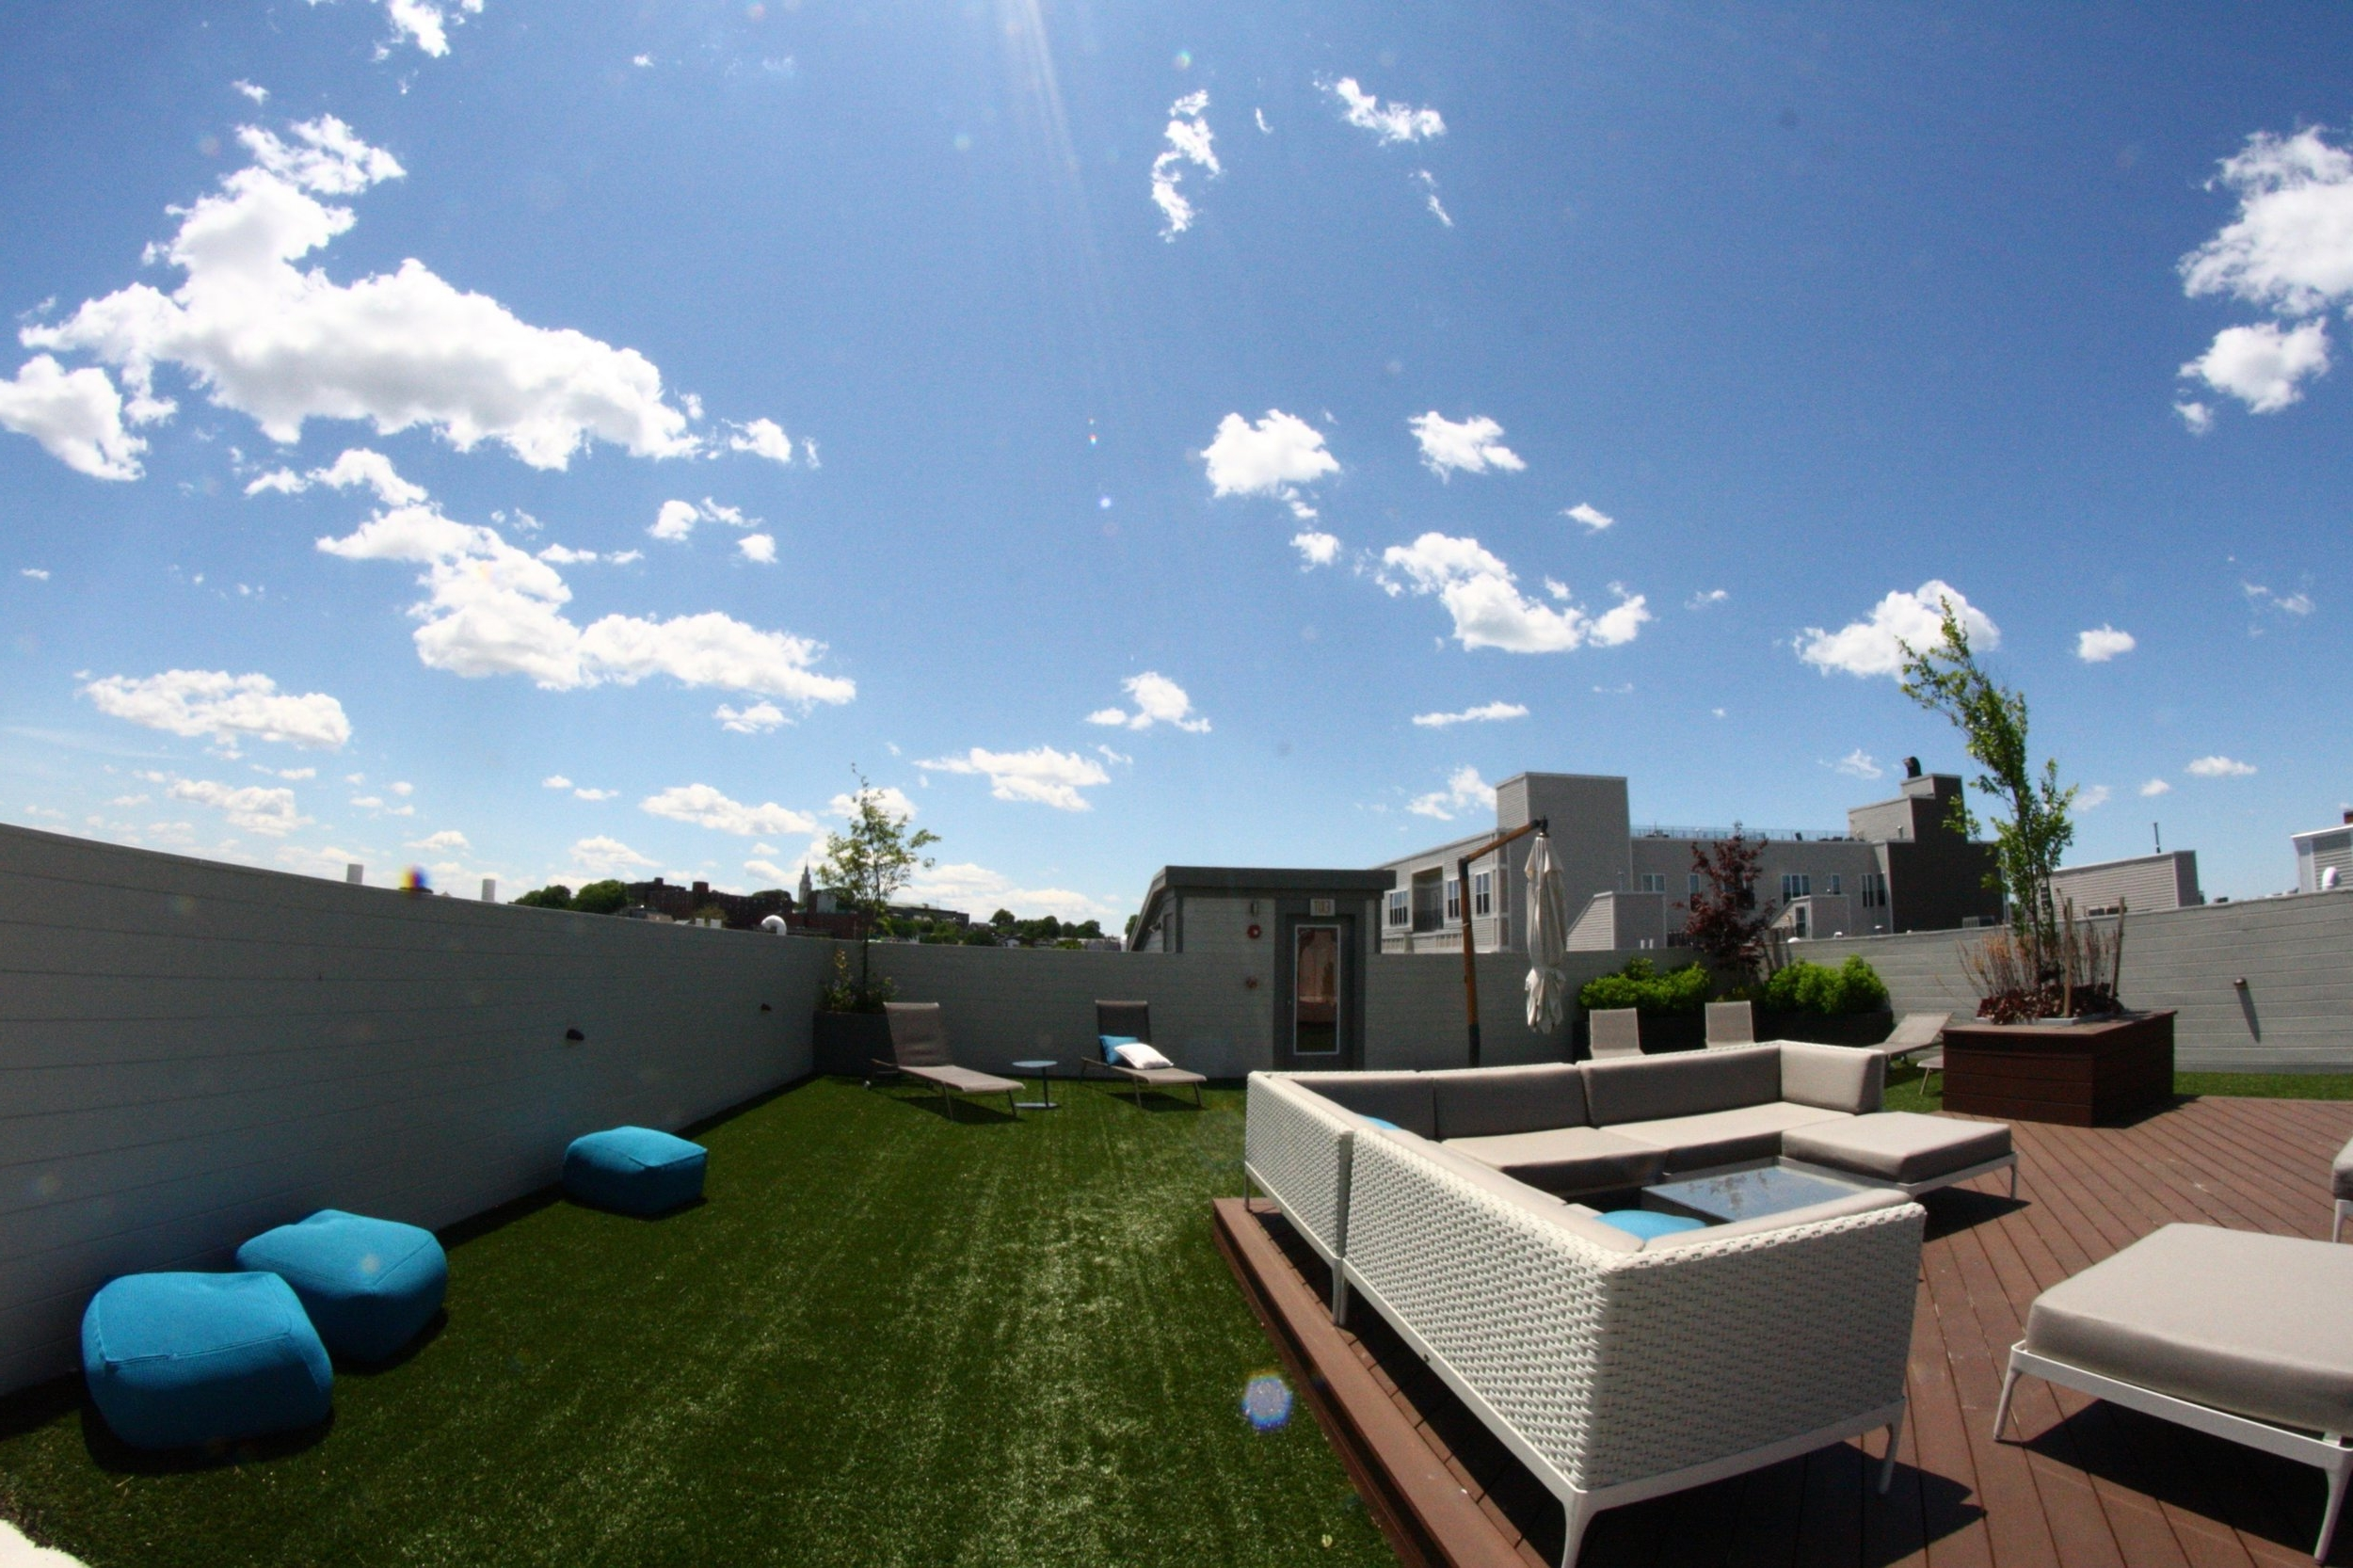 recover-green-roofs-rooftop-patio-east-boston-2015-4.jpg